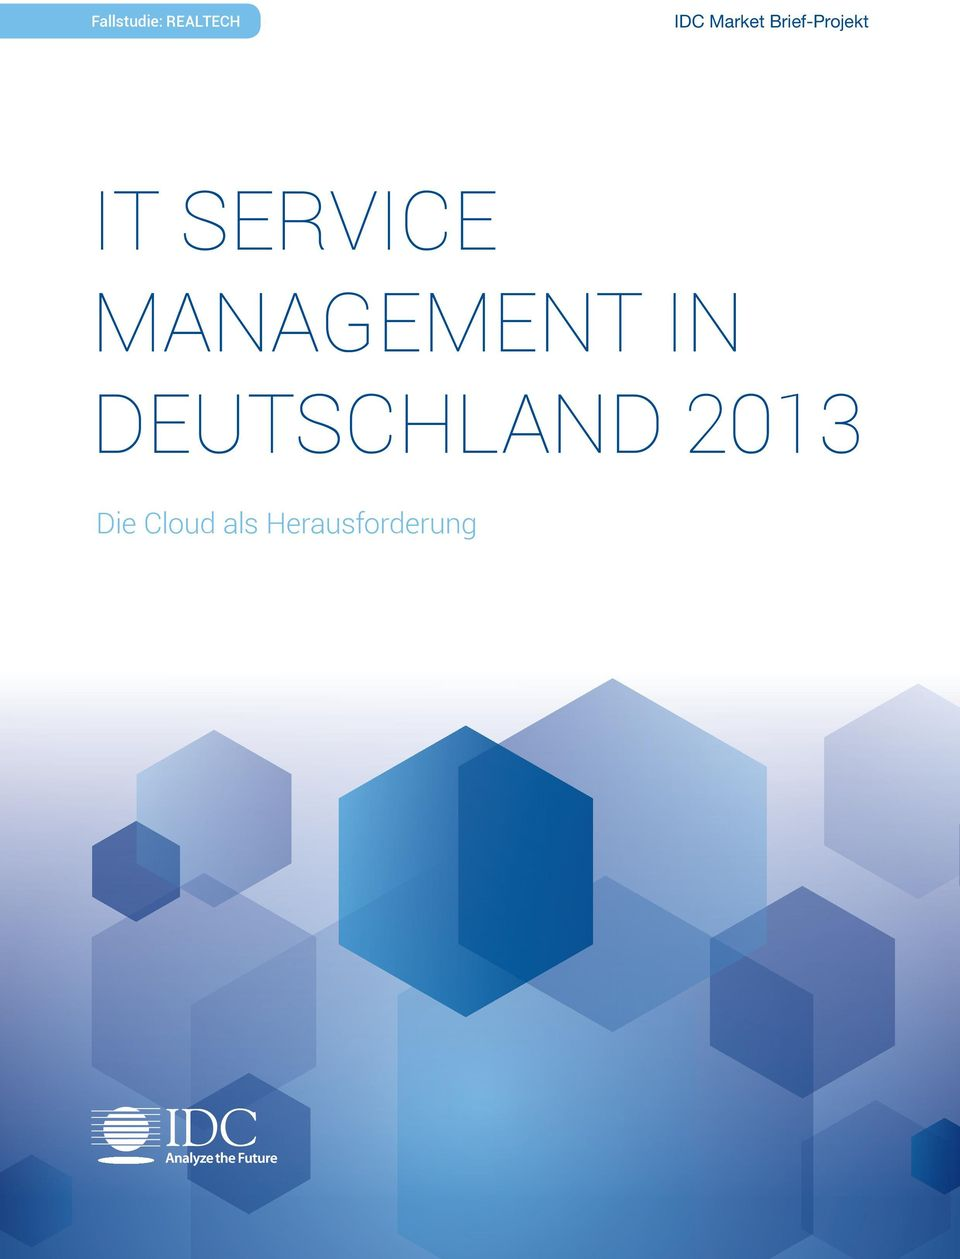 SERVICE MANAGEMENT IN